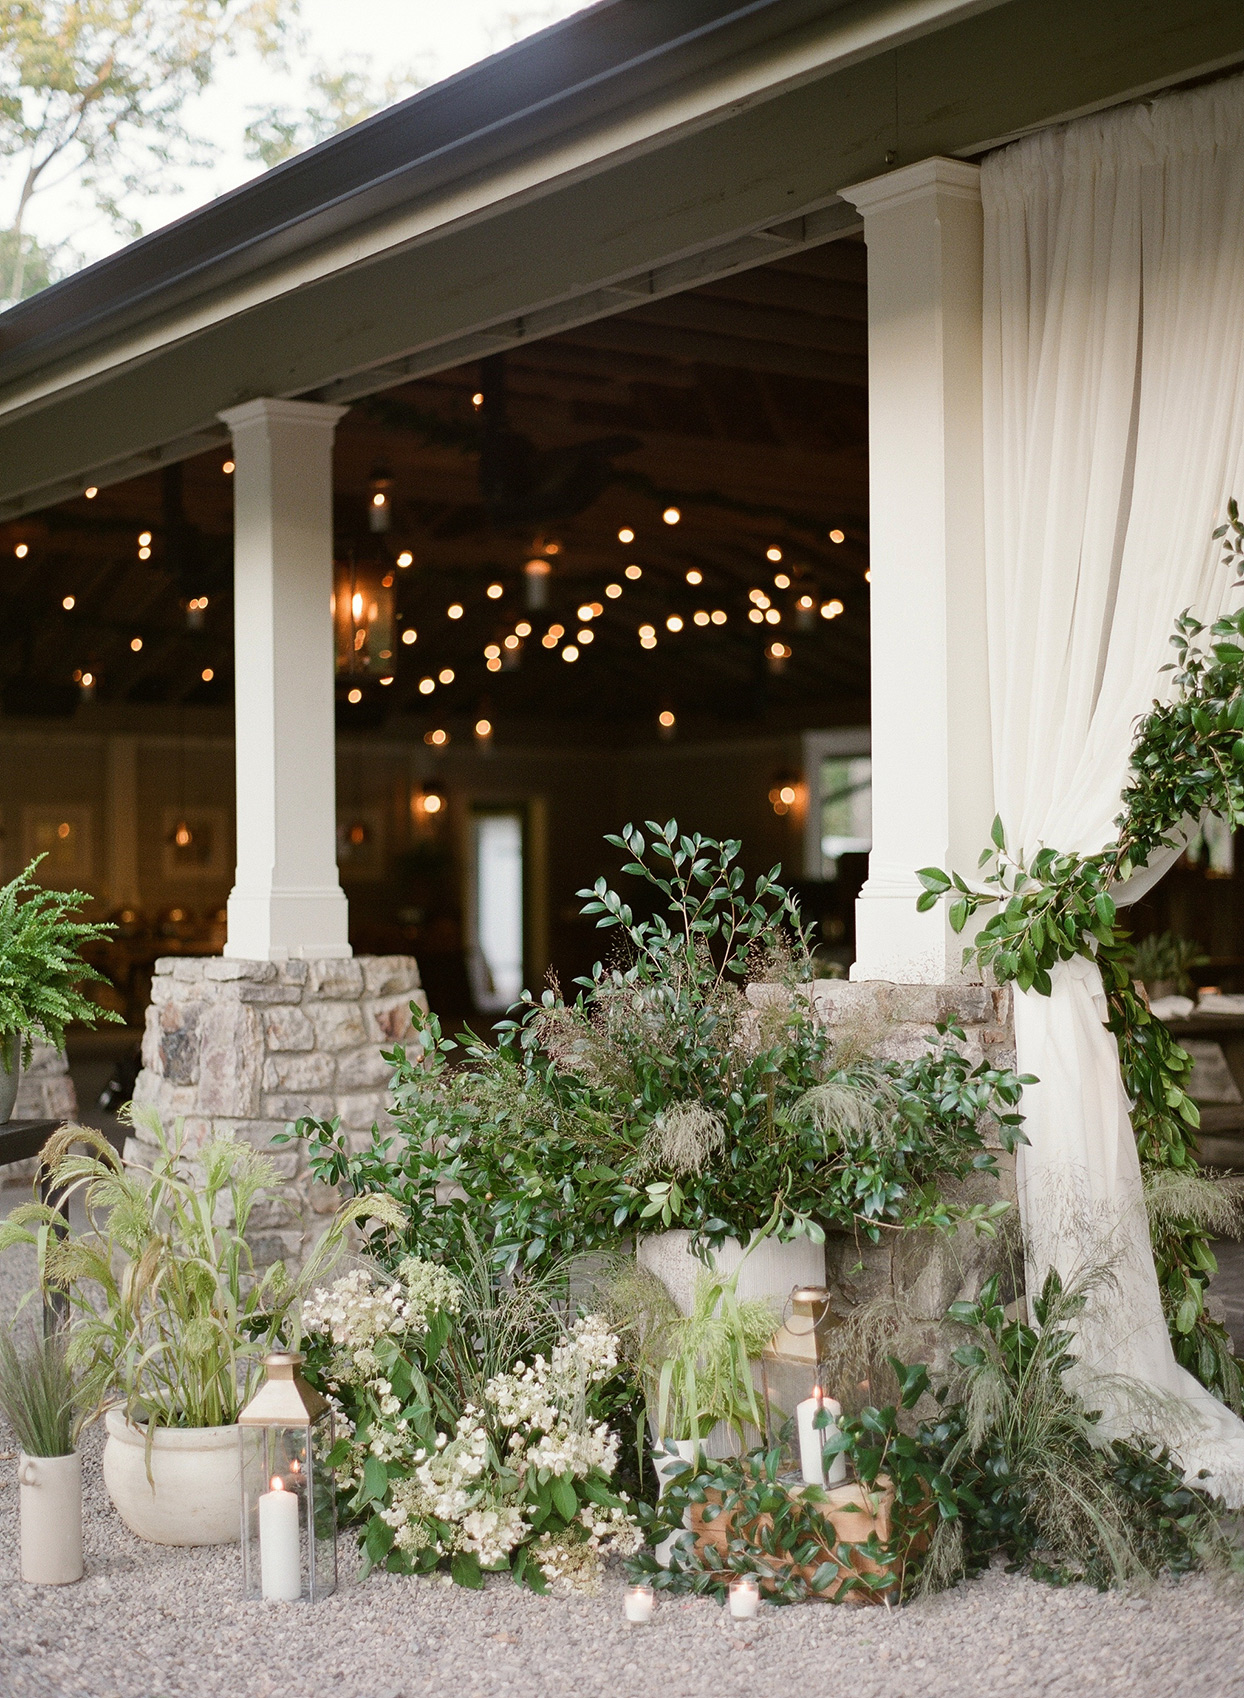 draped tent with floral and greenery display by stone shelter bases